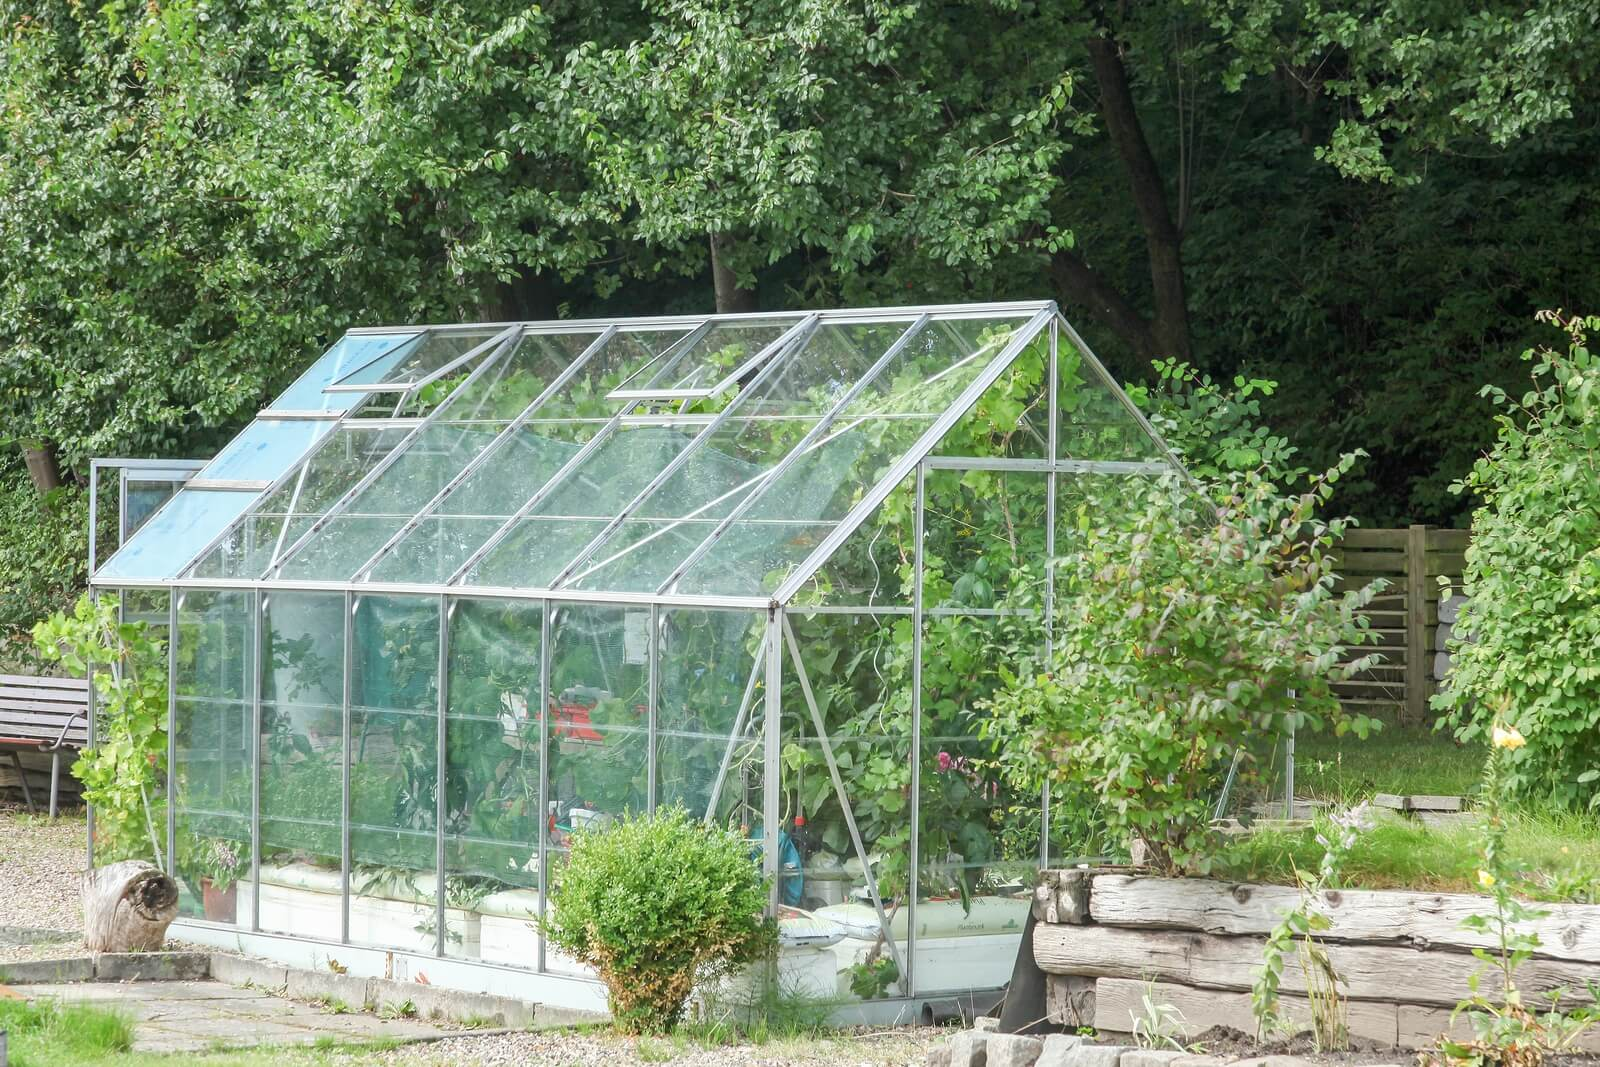 Greenhouse Plans • Insteading on best greenhouse plans, cold frame greenhouse plans, solar greenhouse plans, greenhouse layout plans, gothic arch greenhouse plans, dome greenhouse plans, diy greenhouse plans, pvc greenhouse plans, back yard greenhouse plans, mini greenhouse plans, printable greenhouse plans, stone greenhouse plans, small greenhouse plans, in ground greenhouse plans, home greenhouse plans, gothic style greenhouse plans, vintage greenhouse plans, outdoor greenhouse plans, cheap greenhouse plans, garden greenhouse plans,